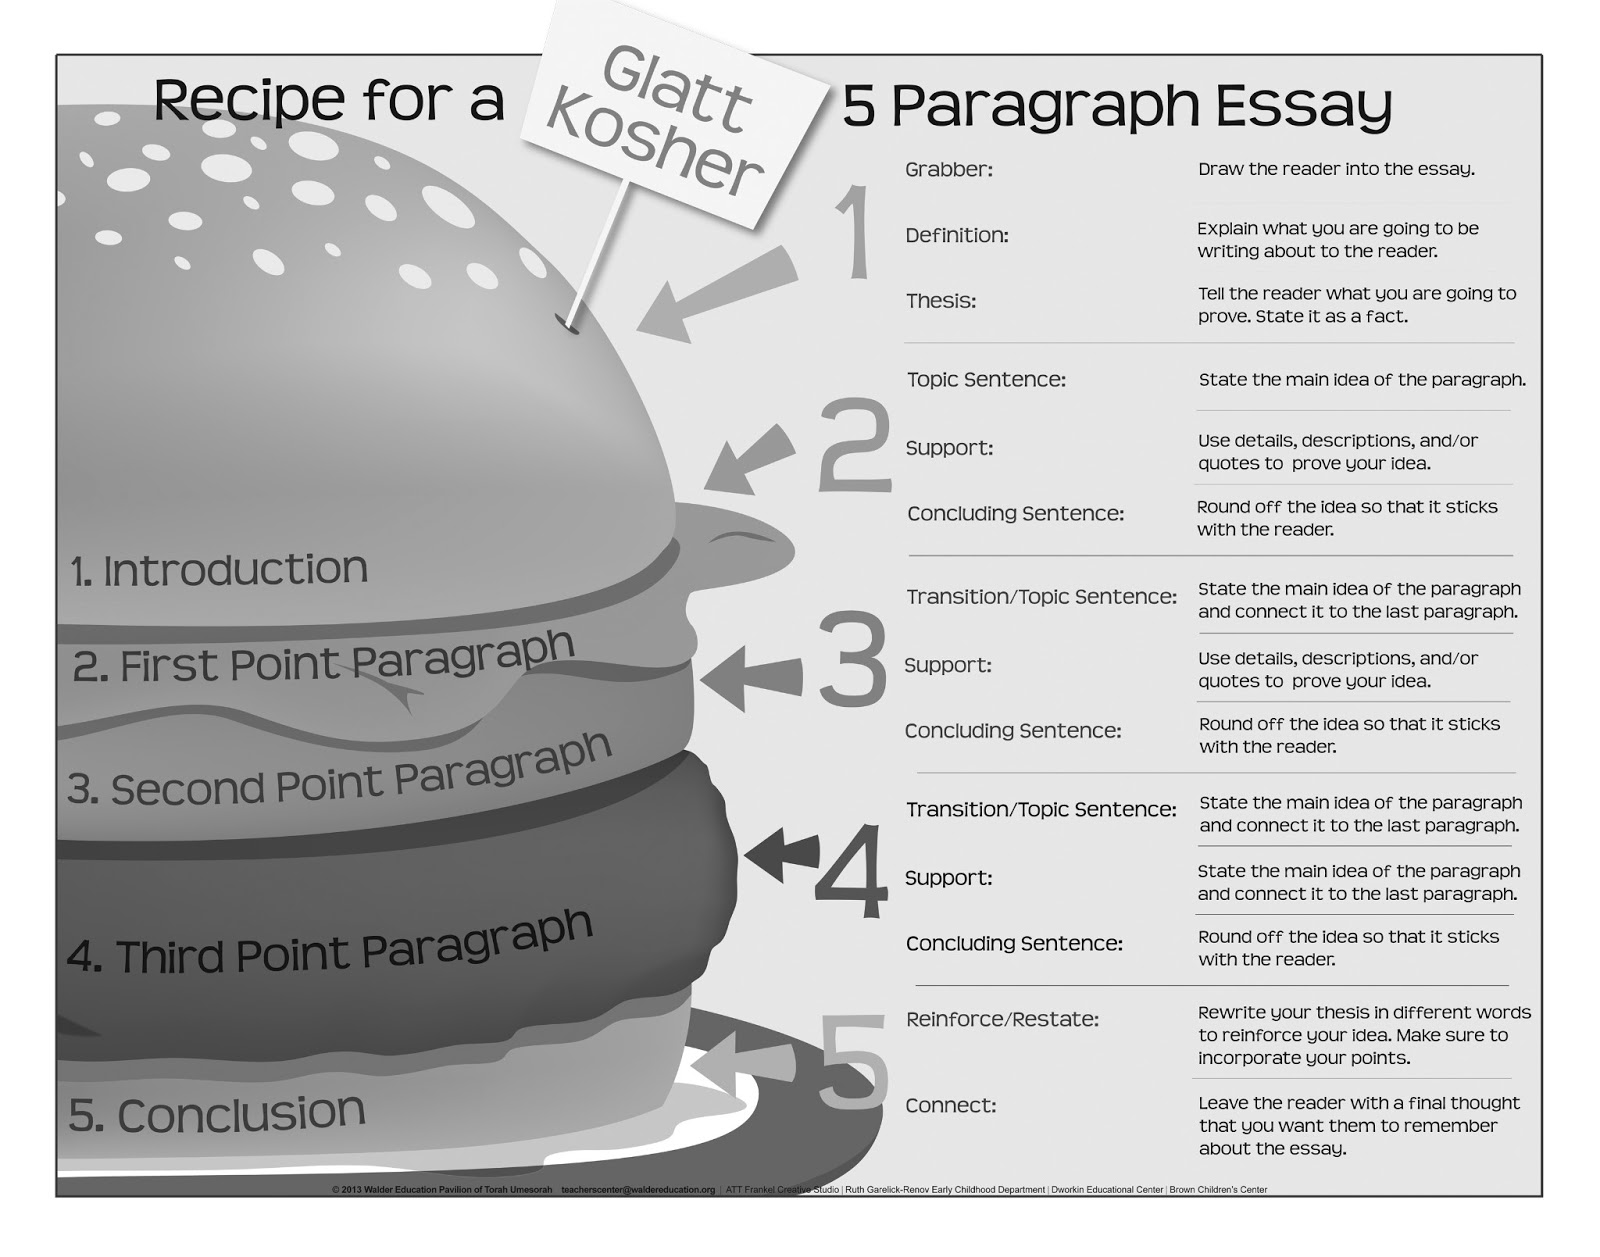 five paragraph essay and climbing and maricopa and writing The five-paragraph essay, a staple in school writing curricula, has become a source of debate for educators, with critics charging the format is too rigid and constraining.